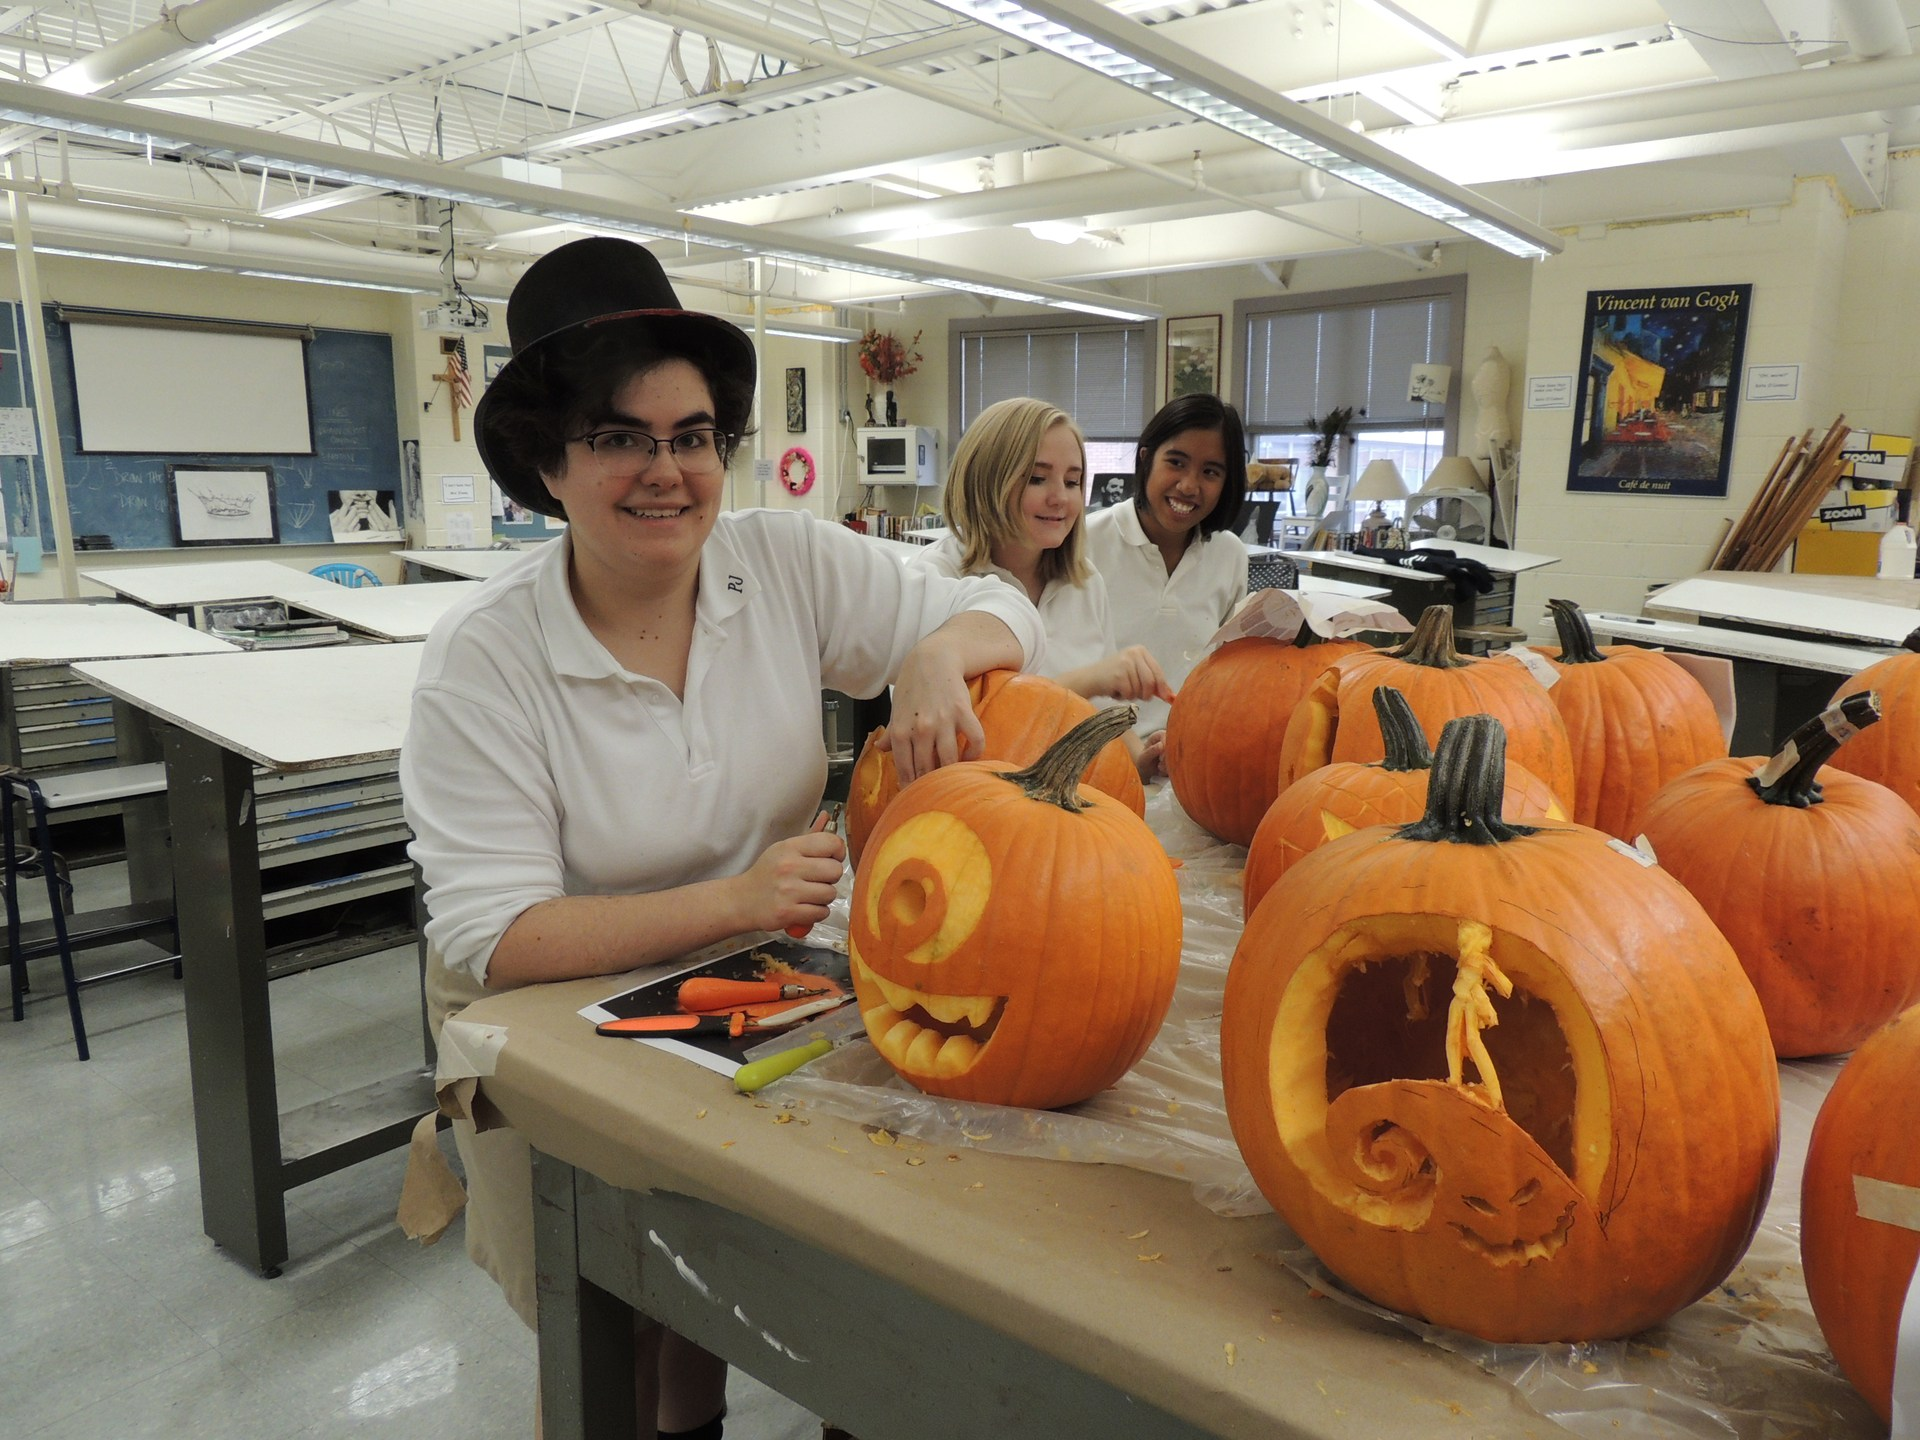 Student carving pumpkins in art room